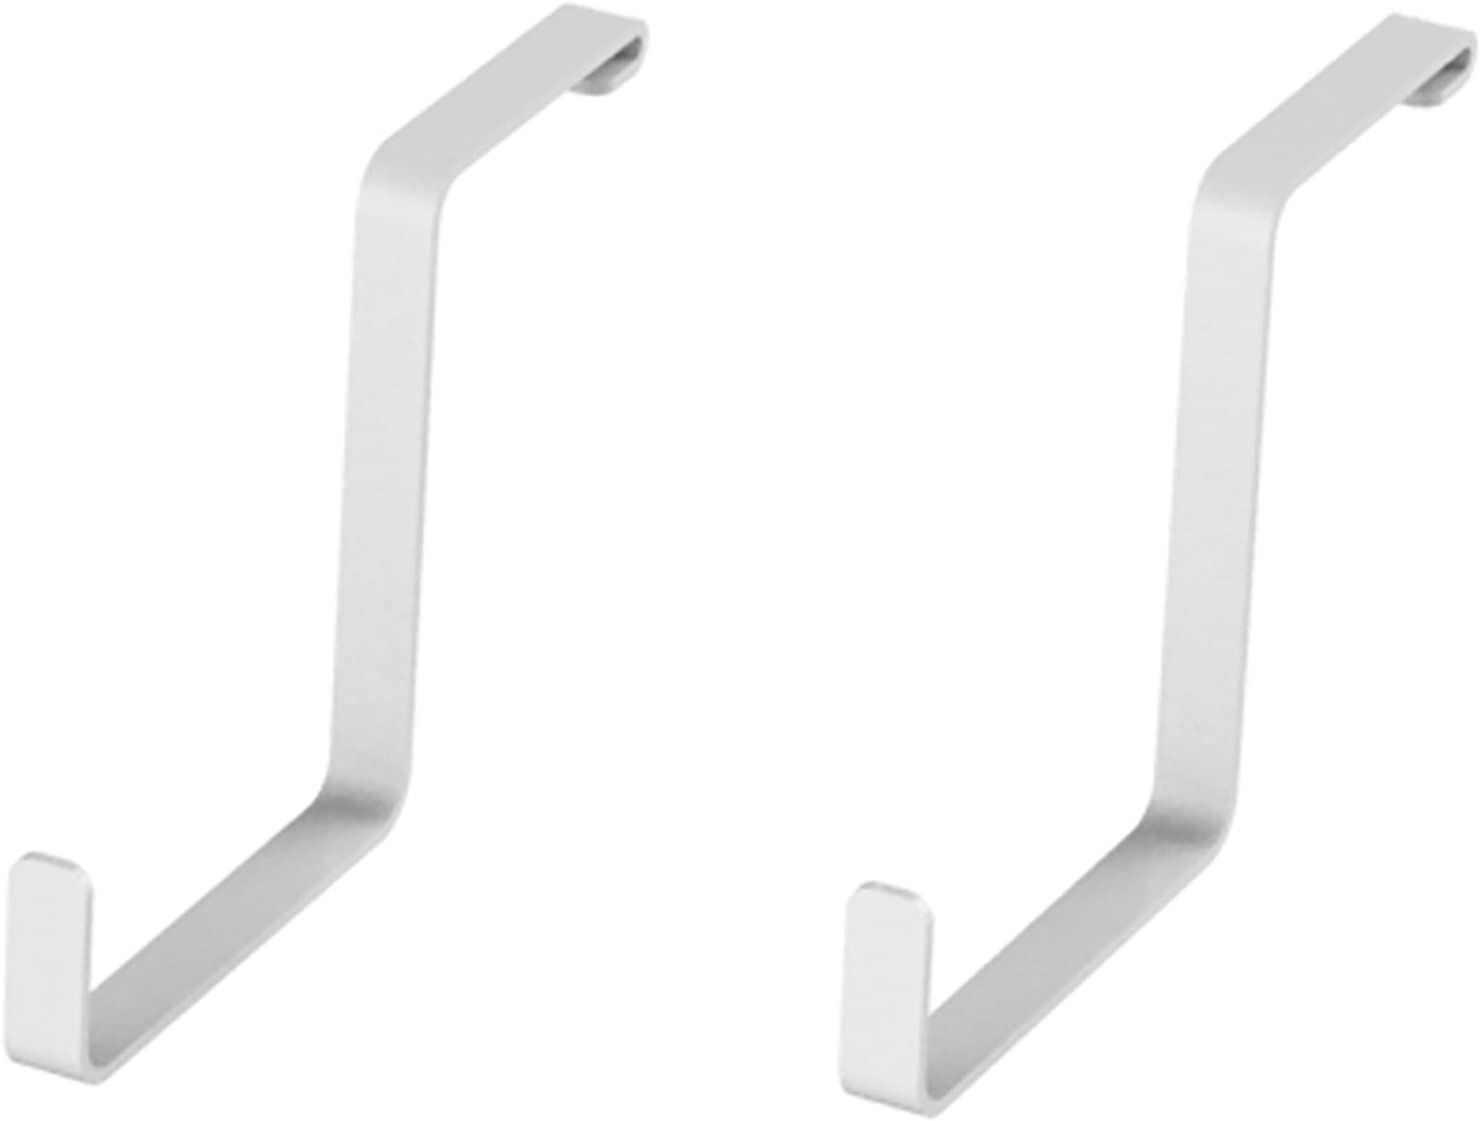 NewAge Products Accessories White 4 ft. x 8 ft. Overhead Hooks, Garage Overheads, 40305